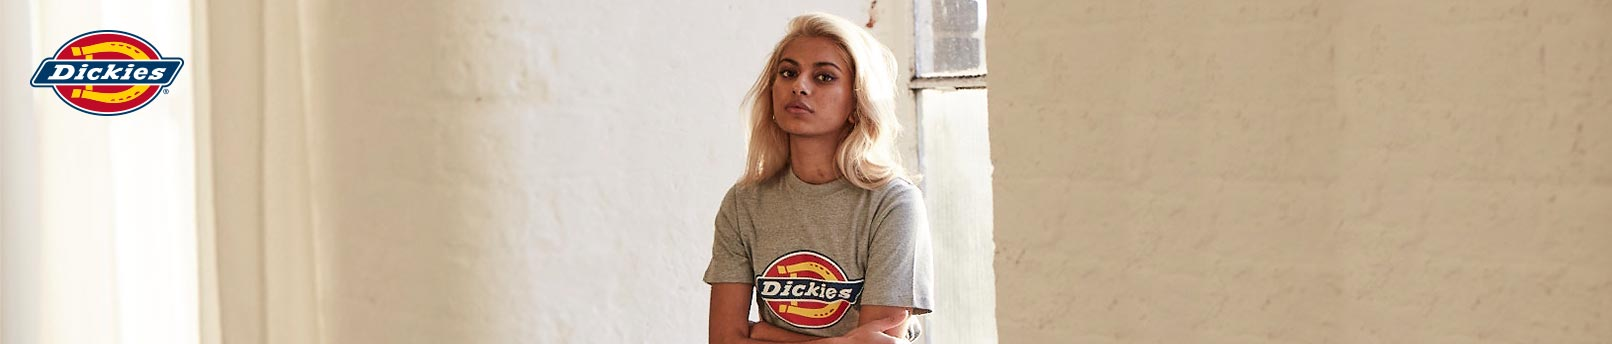 Discover Dickies